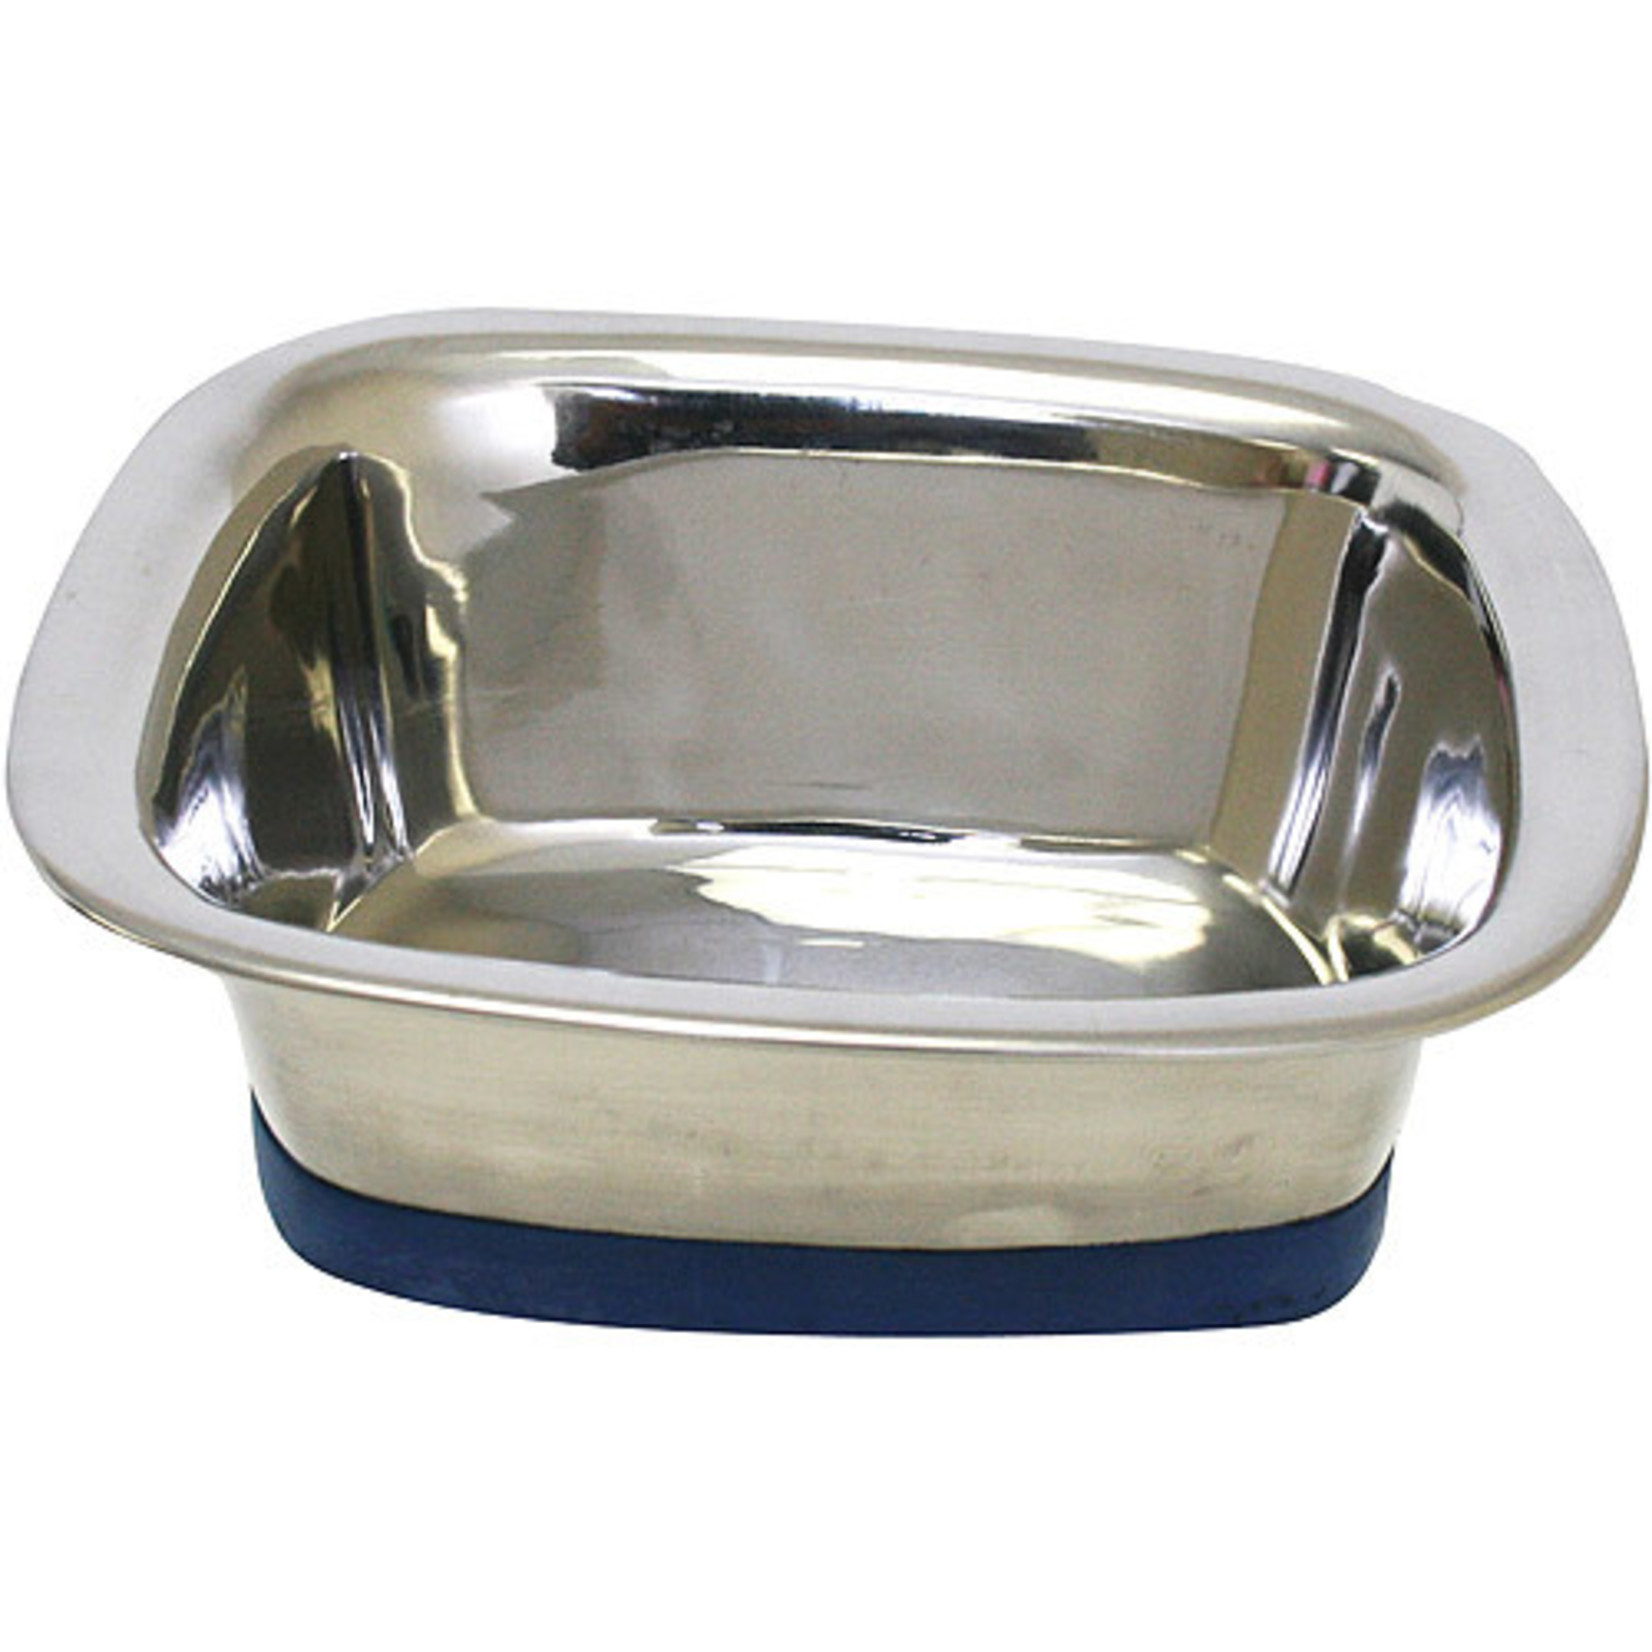 Our Pets Company Durapet Stainless Steel Bowl Square Medium